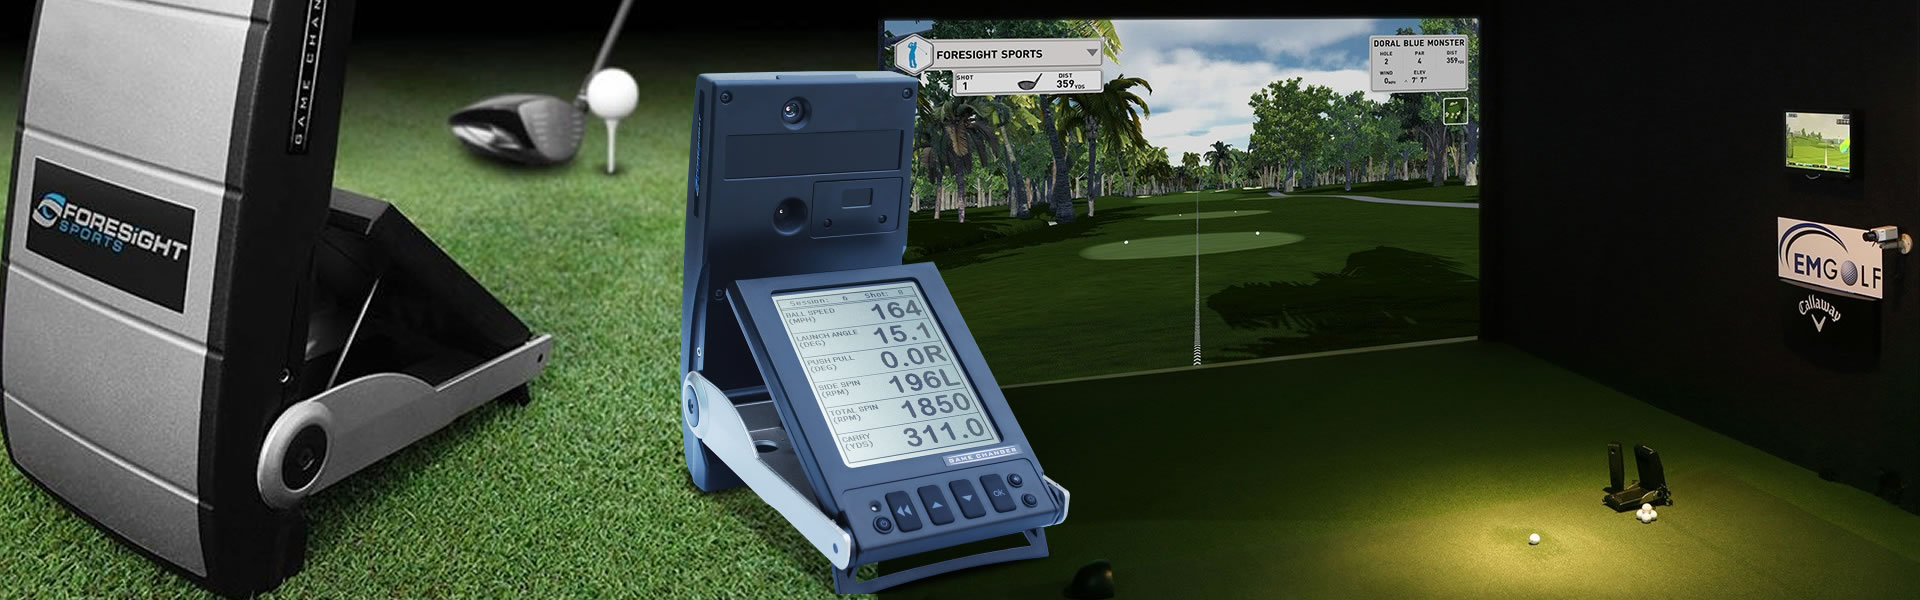 Golf-Simulator-Launch-Monitor-Stunde-Golfpro-Zuerich-Thierry-Rombaldi-02